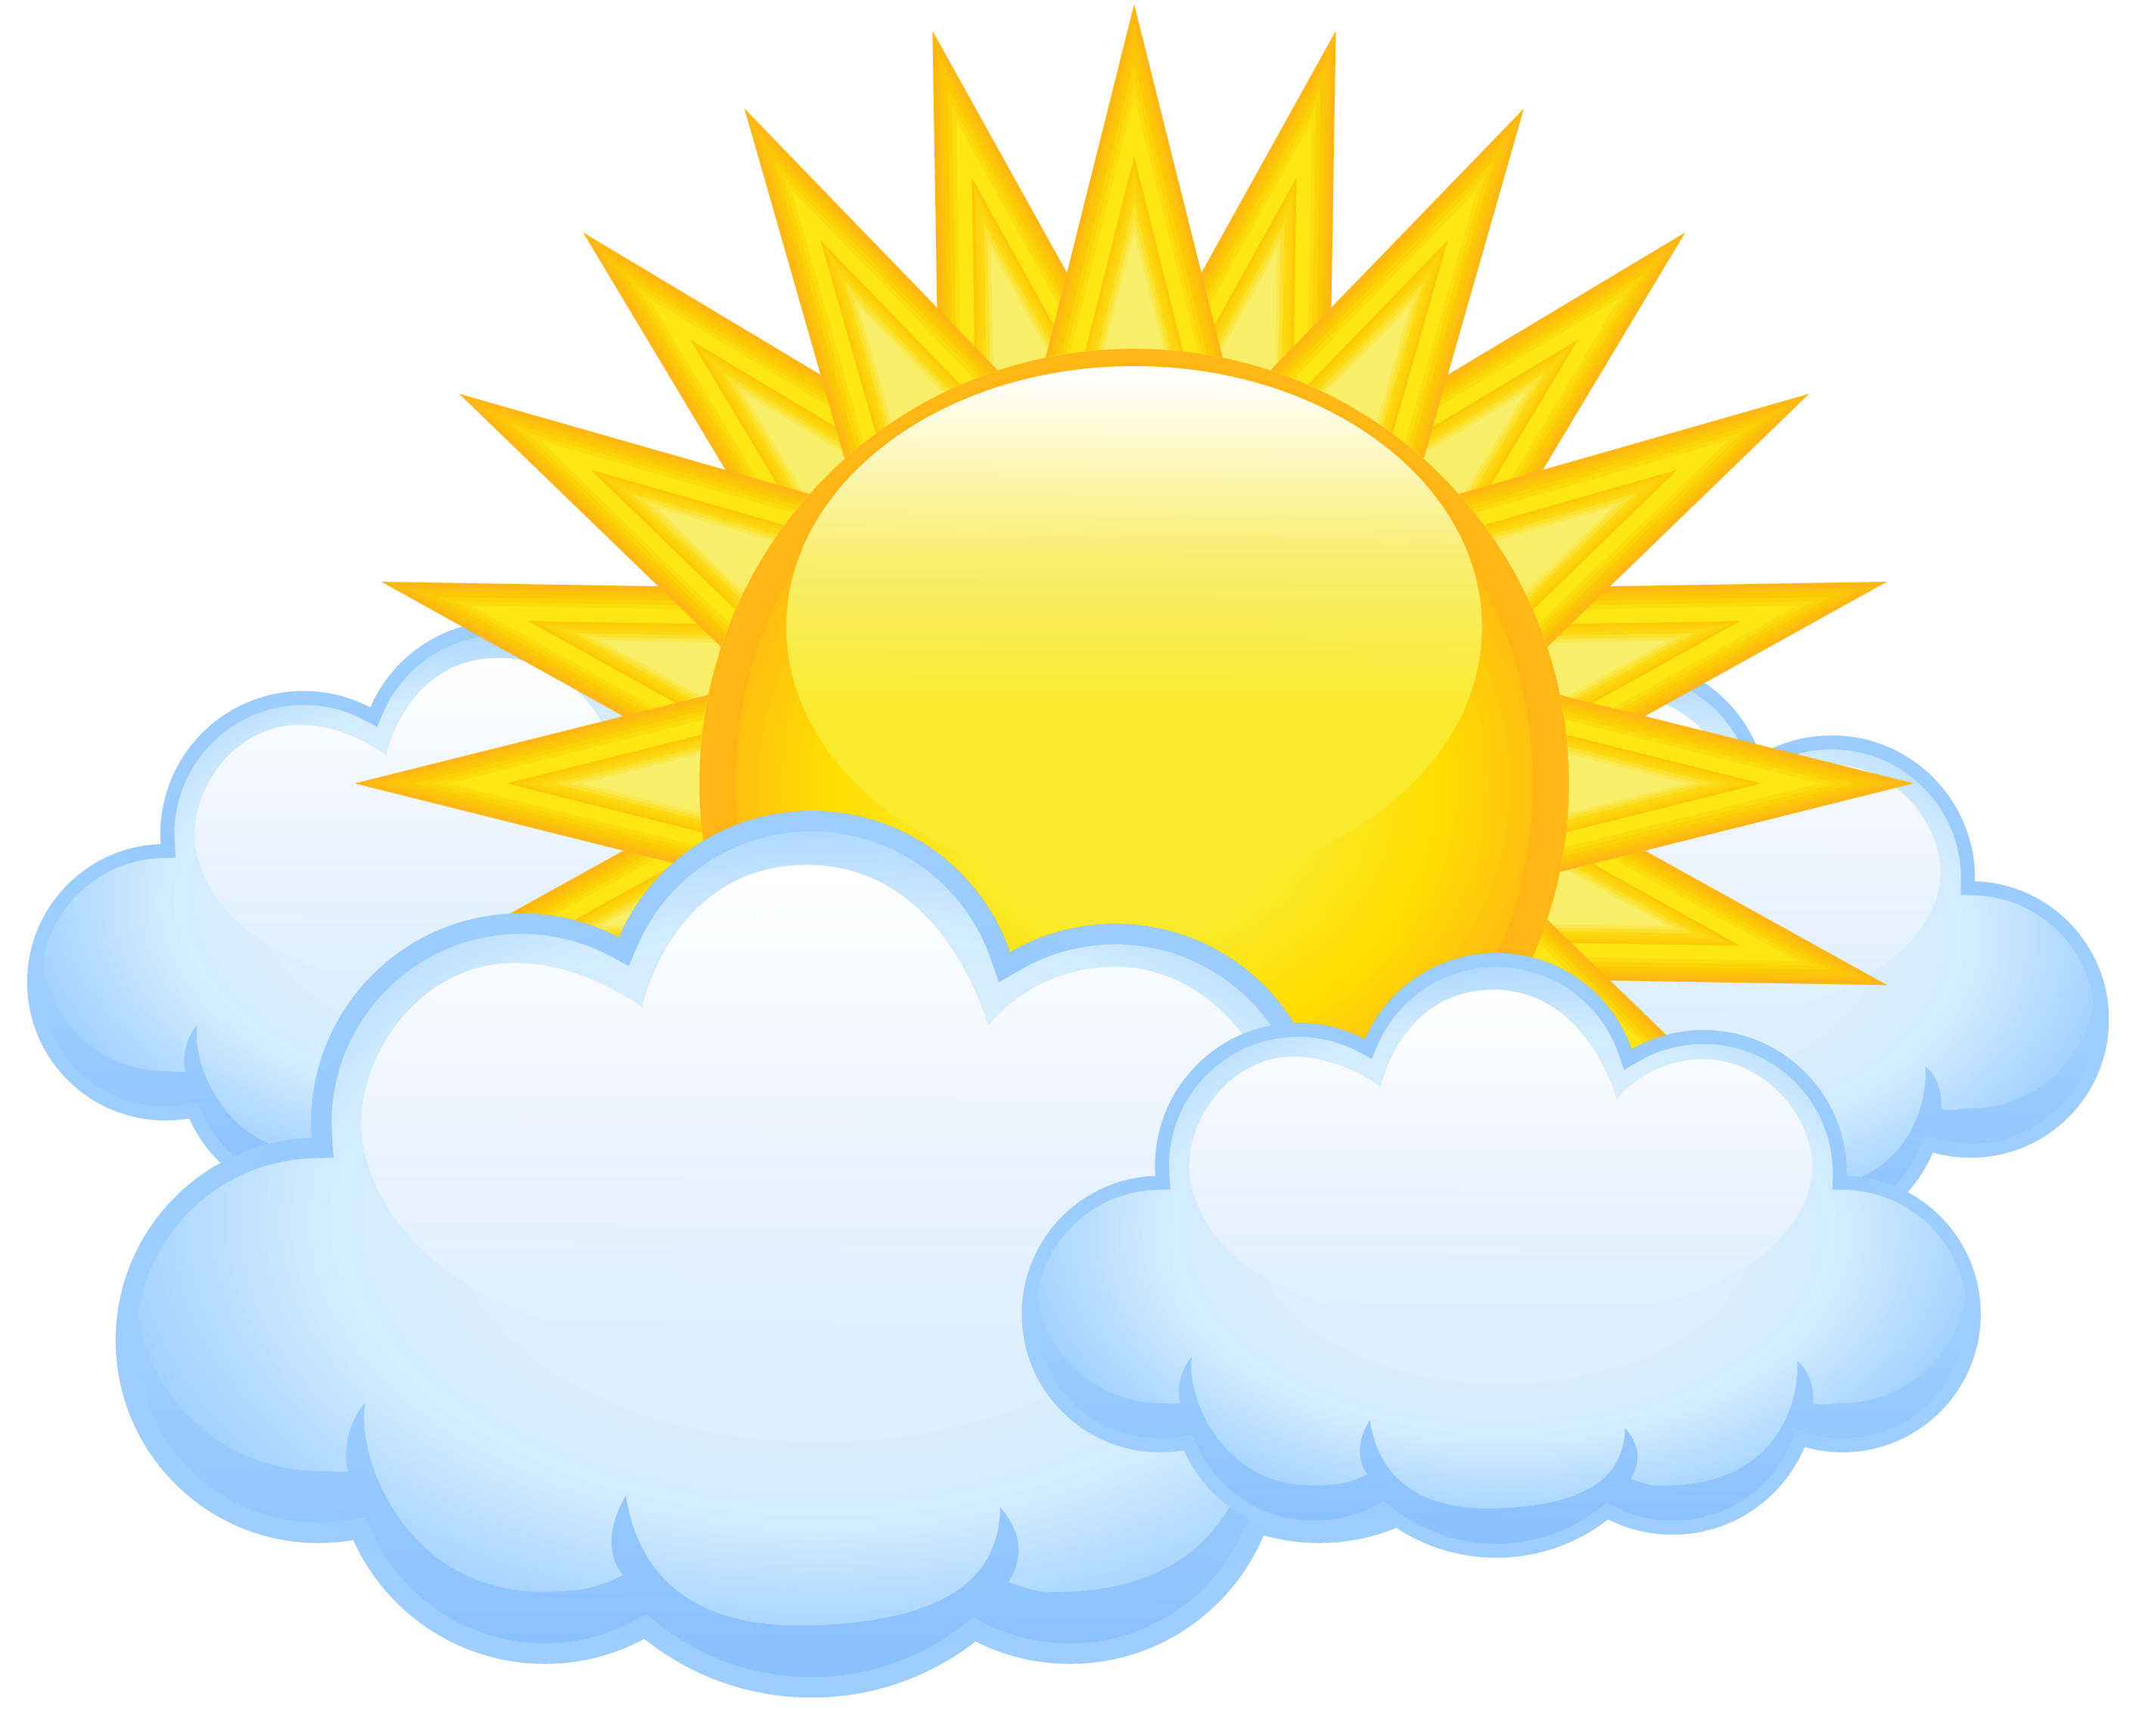 Free clipart sun and clouds graphic transparent download Sun with Clouds Transparent PNG Picture | Gallery Yopriceville ... graphic transparent download